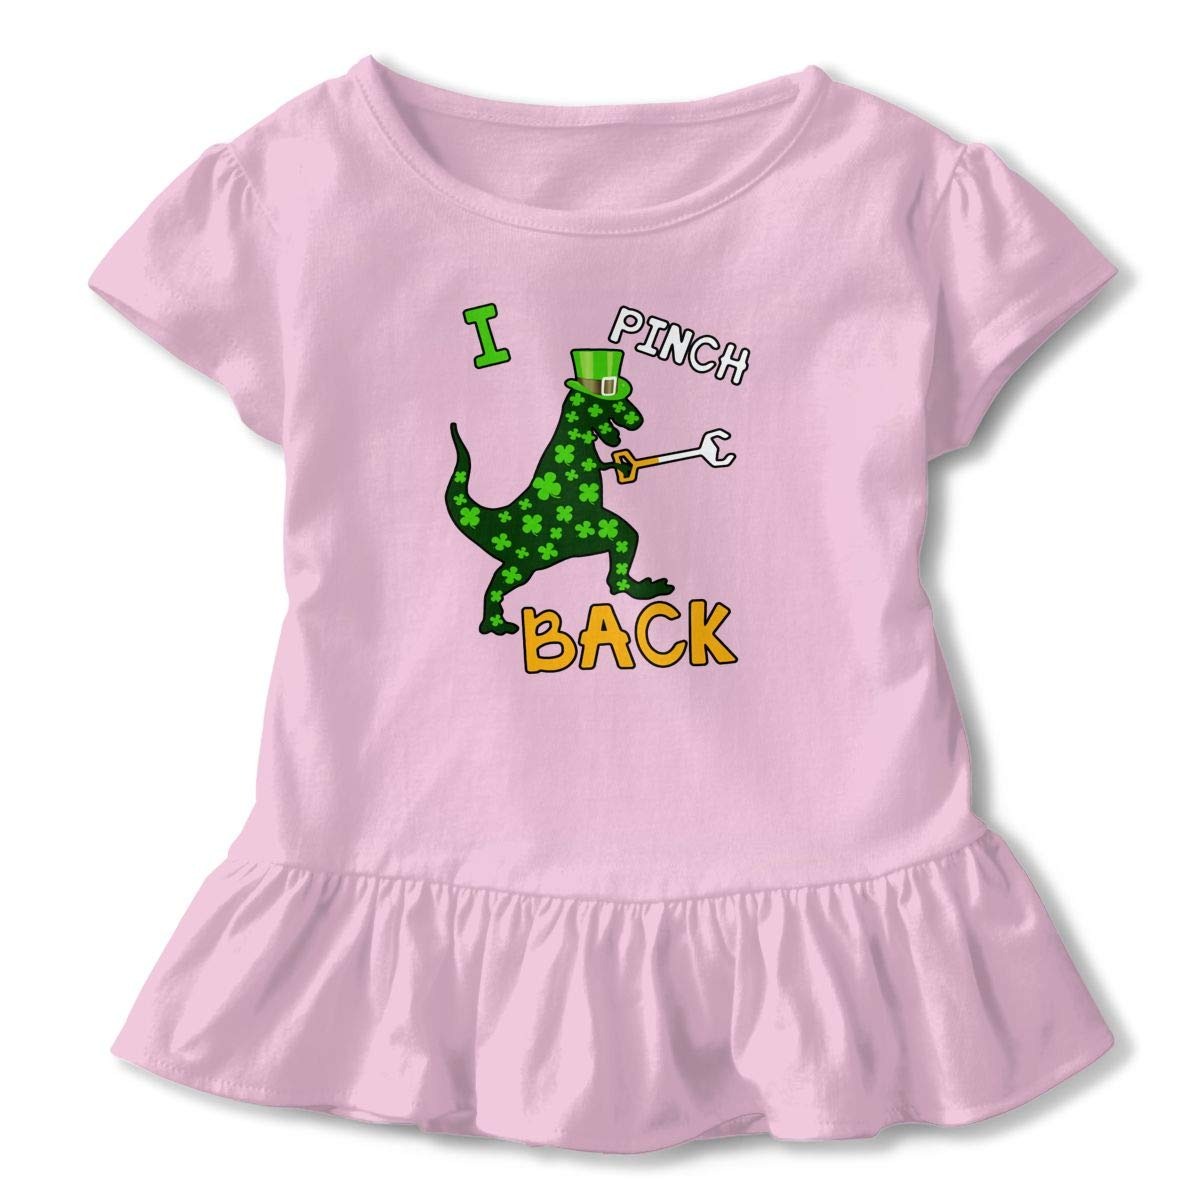 I Pinch Back Dinosaur St Patricks Day Toddler Baby Girls Cotton Ruffle Short Sleeve Top Cute T-Shirt 2-6T